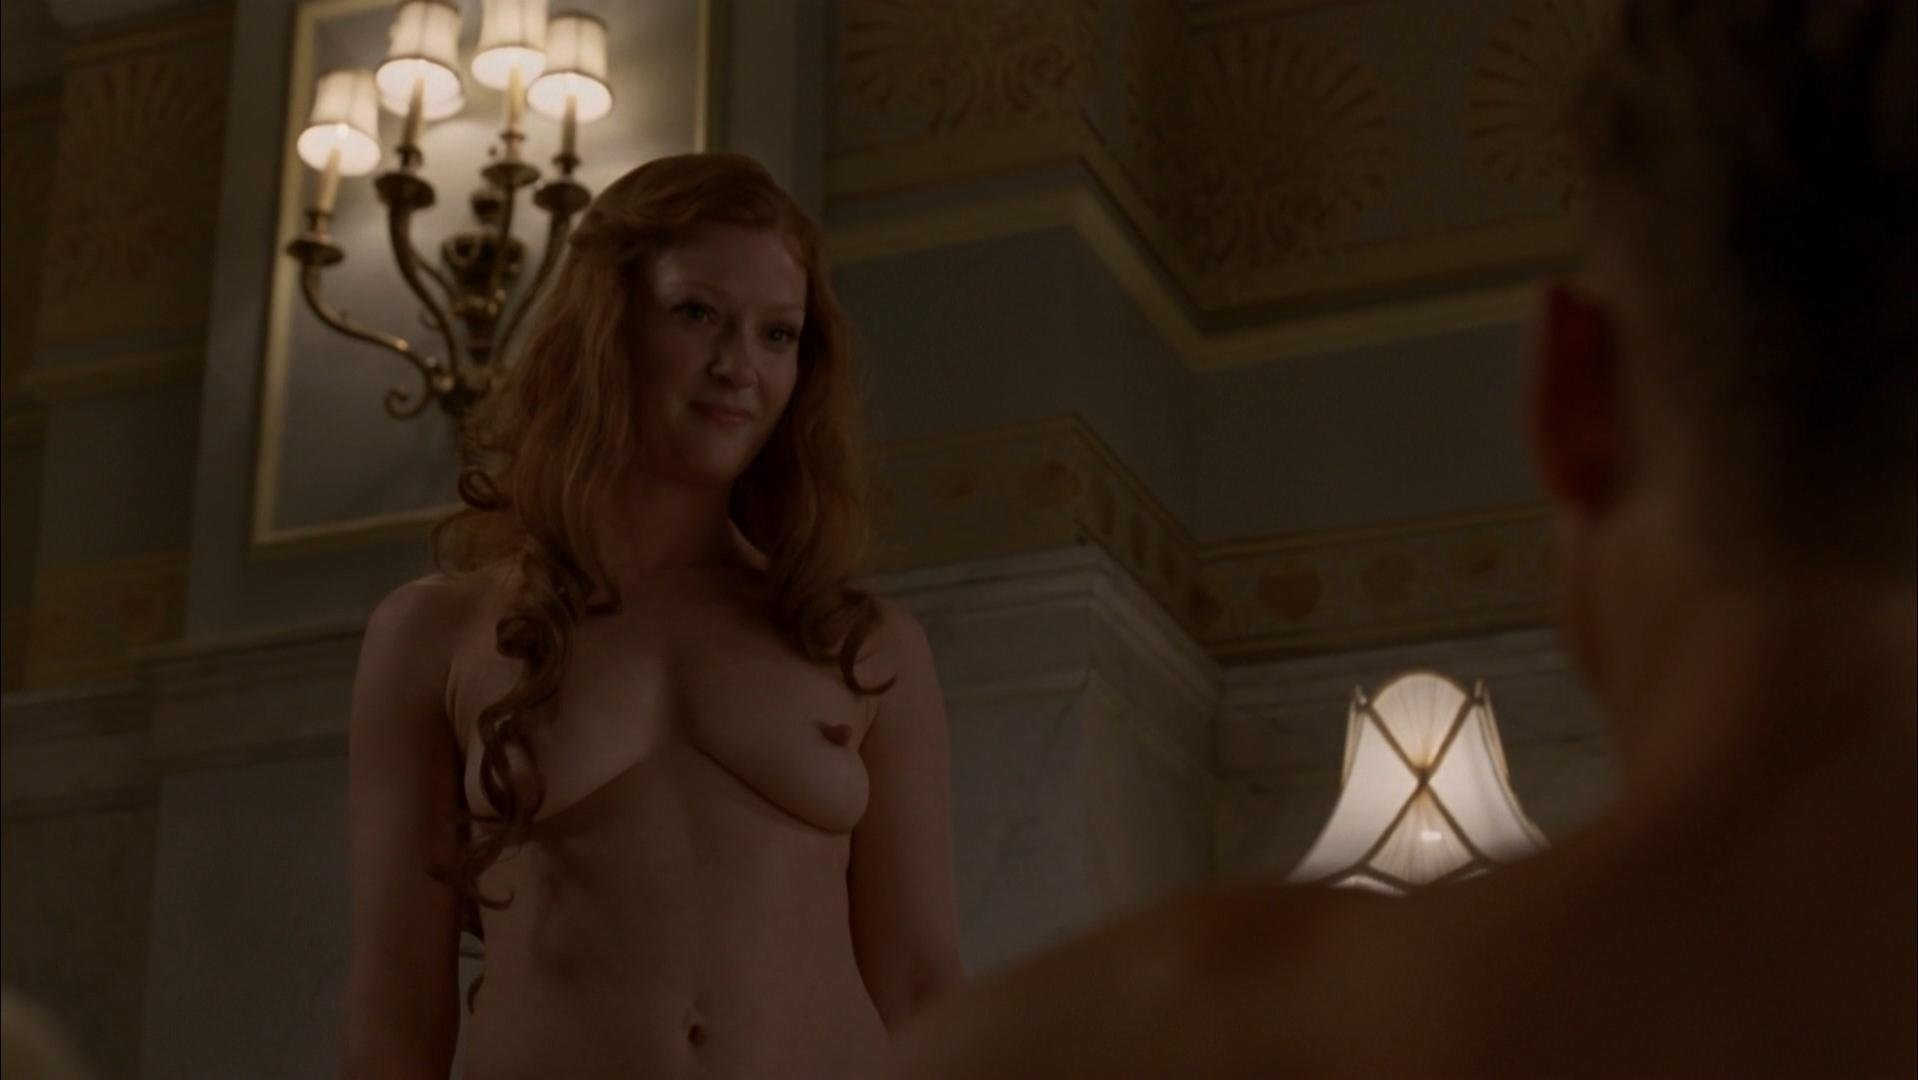 Gretchen Mol nude - Boardwalk Empire s03e07 (2012)